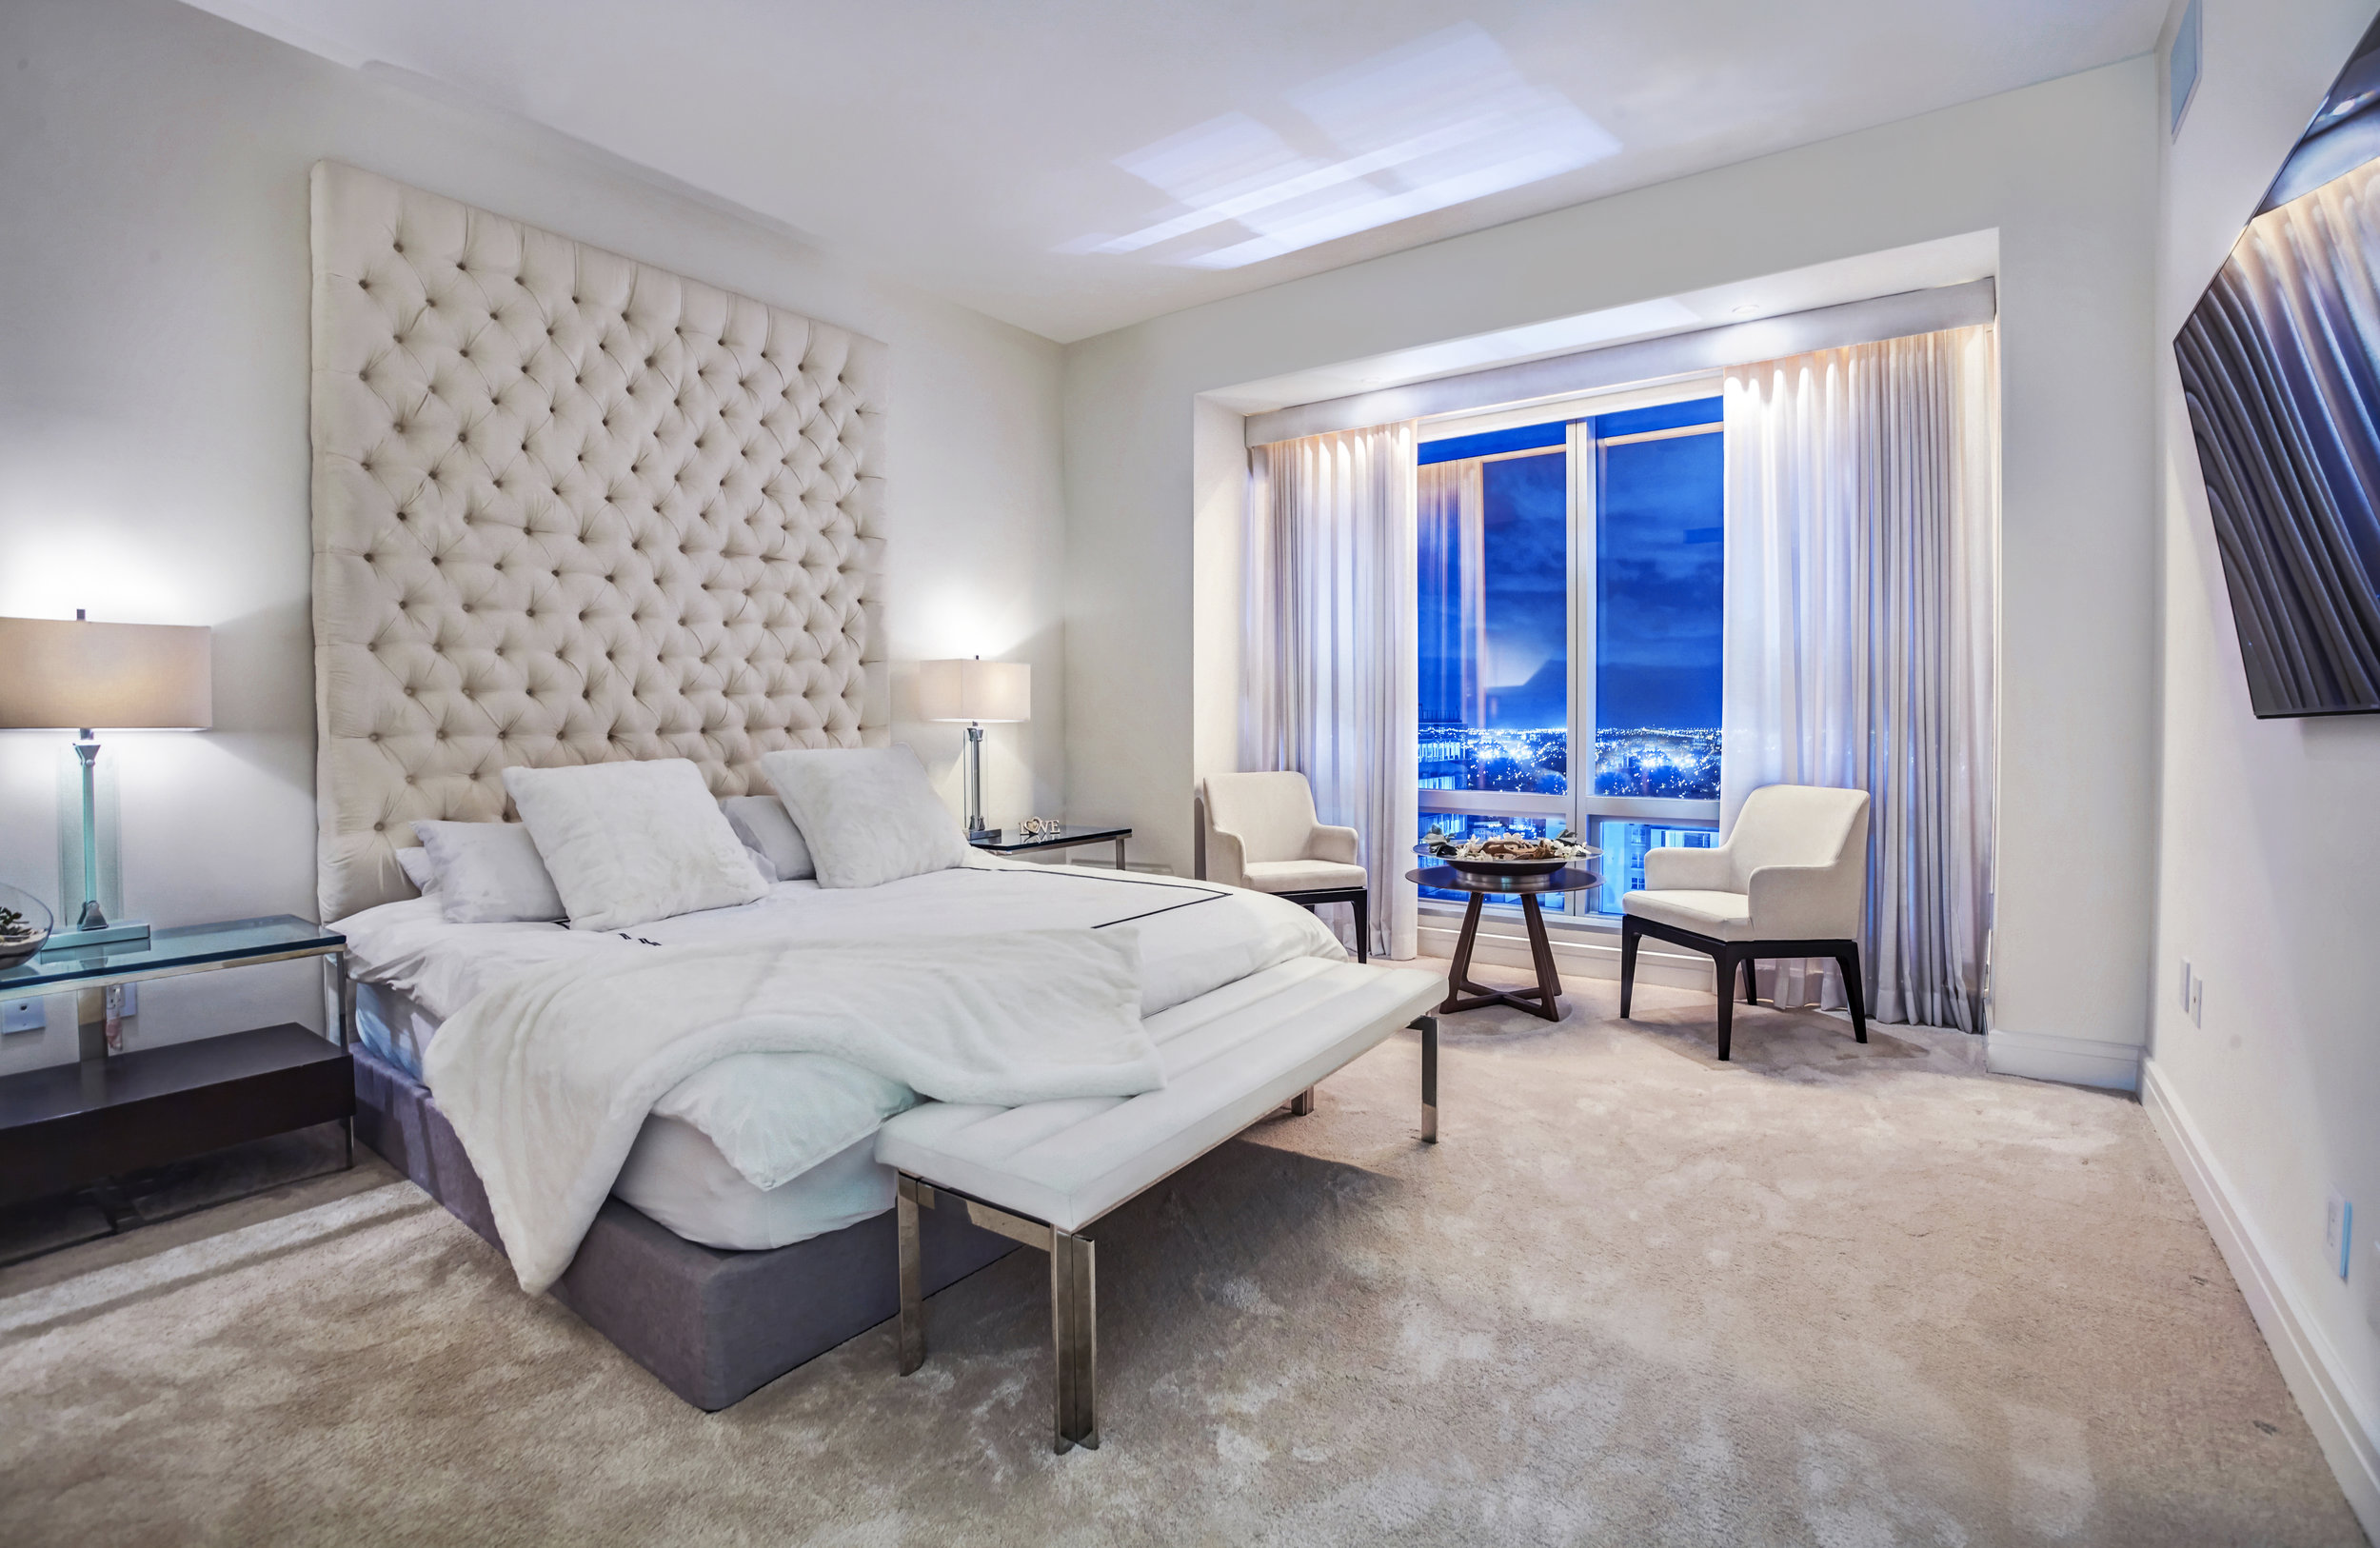 Former Real House Wives Star Lists Four Seasons Residences Brickell Pad For $1.9 Million